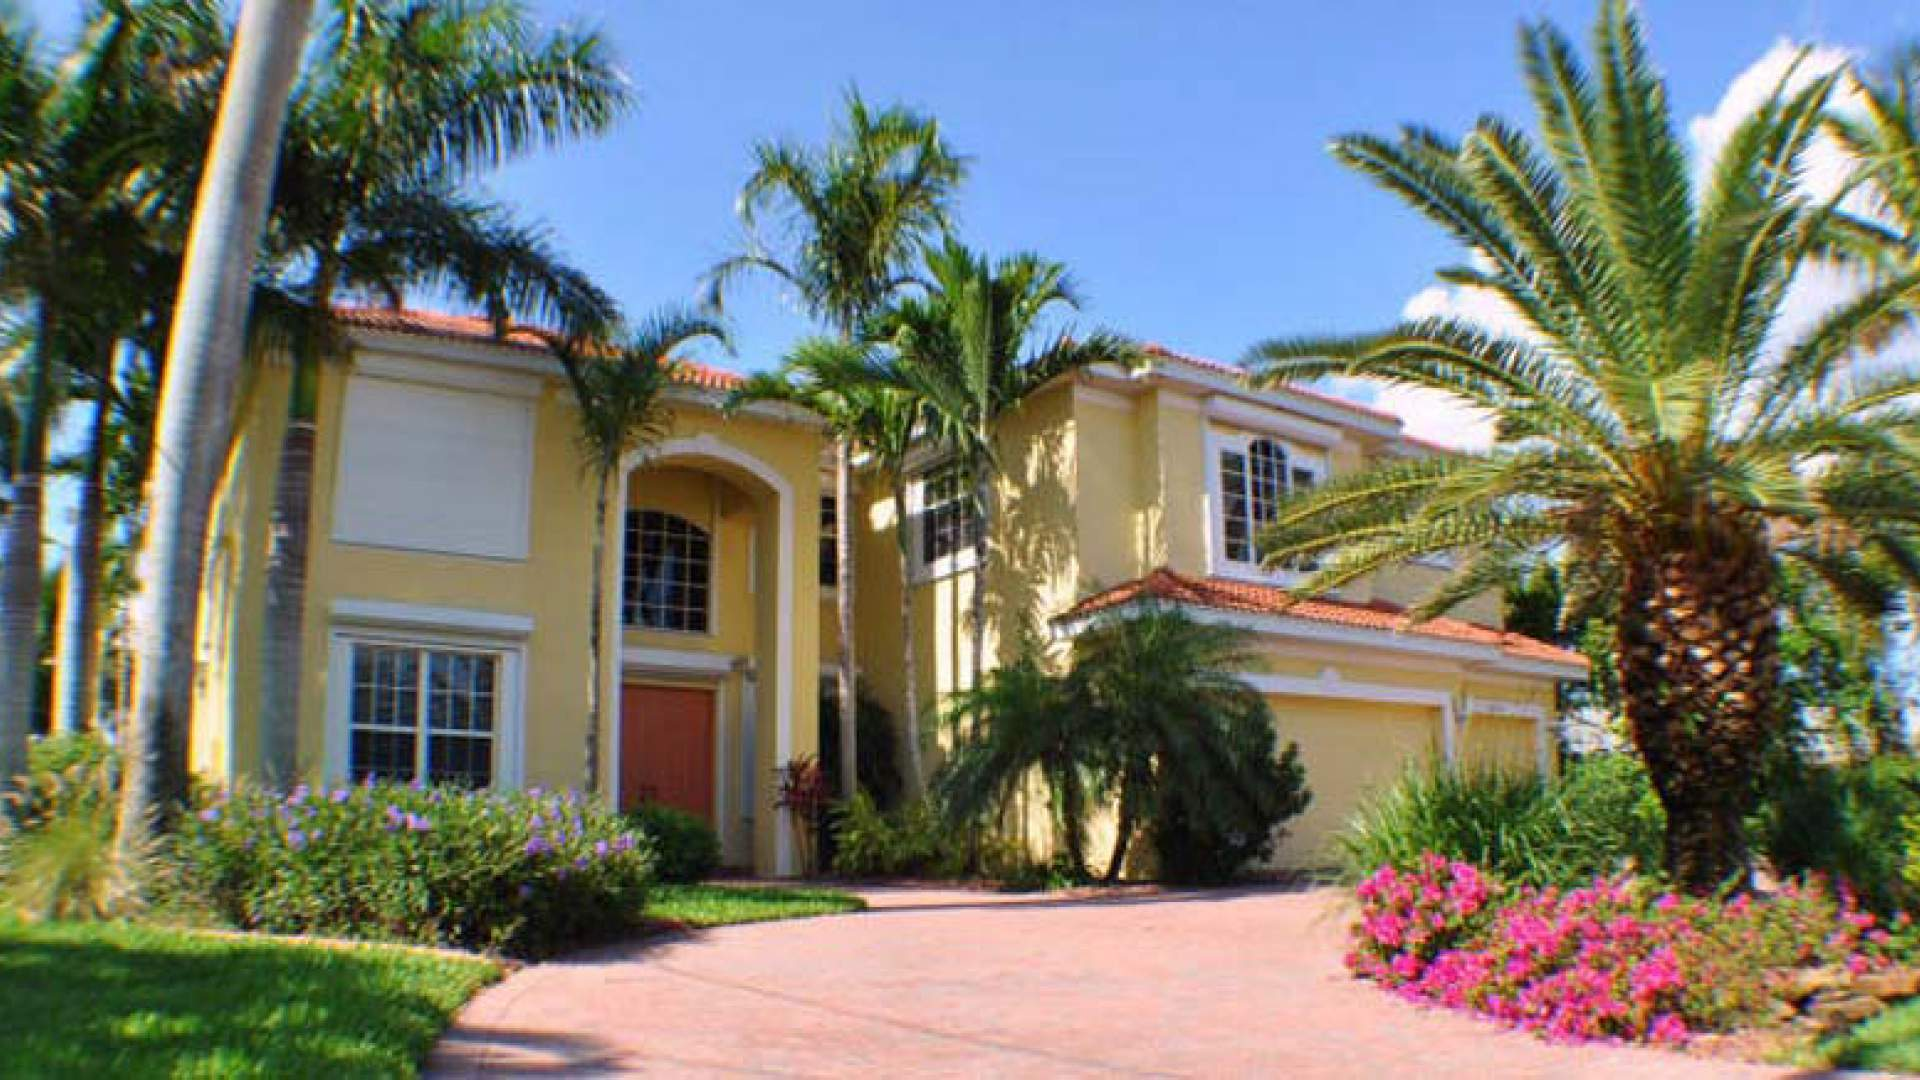 Villas villa palm residence in cape coral florida - 2 bedroom apartments in cape coral florida ...